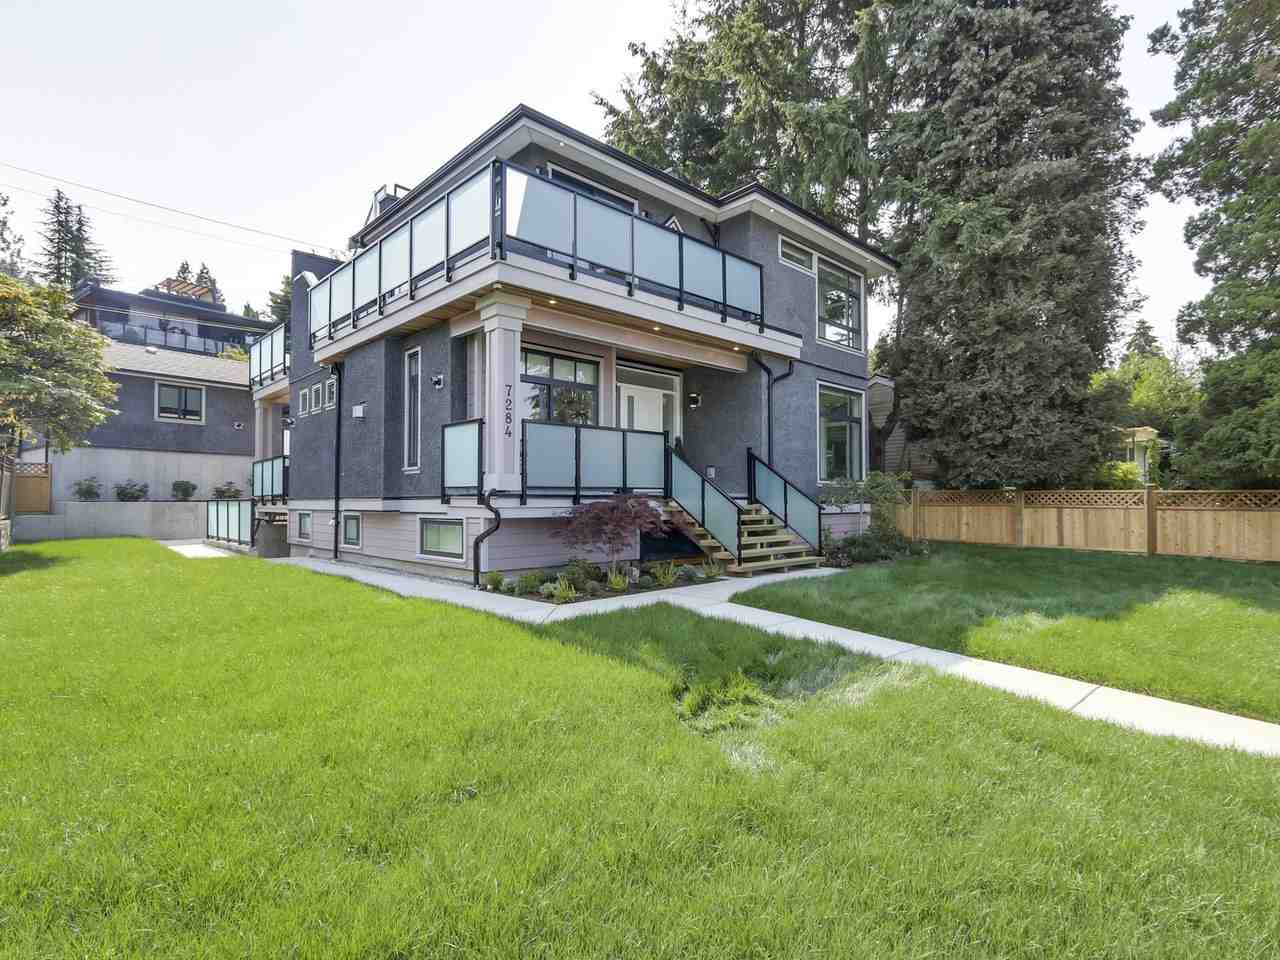 Prestigious Westridge family home with 6 bedrooms and 4 baths in 3642 sq ft! In a community for the active family with many recreation options at your doorstep. Schools of all levels including French immersion. The home is fully equipped with AC, Spice kitchen, Radiant heat, Hardwood, Security Camera, and Decks and Patios galore.  You will enjoy the open-concept living in this home; Bright, Spacious and Sunny all the time. Great room sizes, and a fully developed basement! on a very private view lot. Excellent location, close to SFU, shopping and recreation. AND...WHAT A PRICE!! Please book a private showing through your realtor.